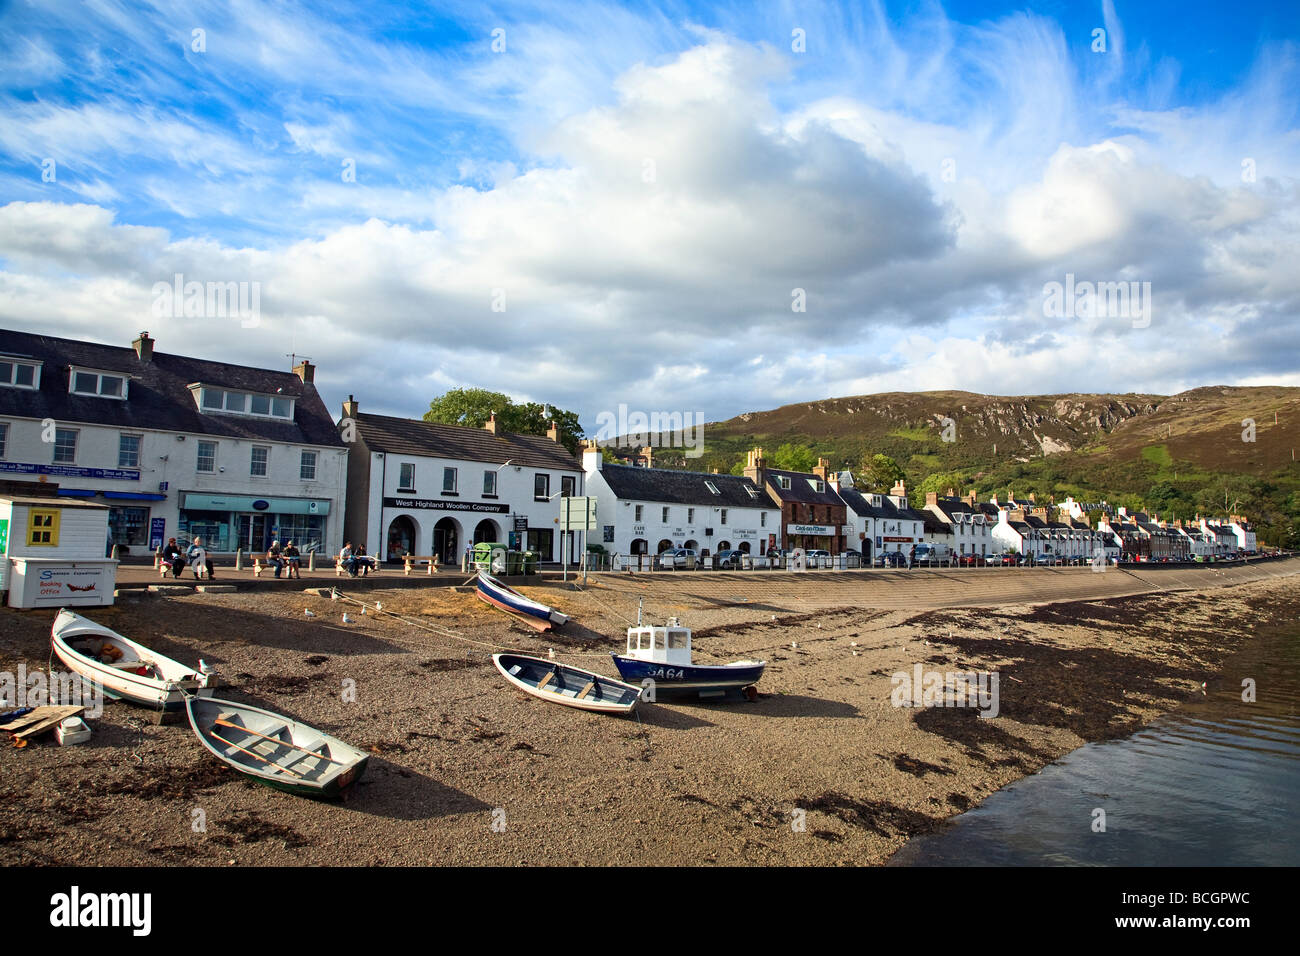 Fishing boats in Ullapool harbour Western Highlands Scotland UK 2009 - Stock Image